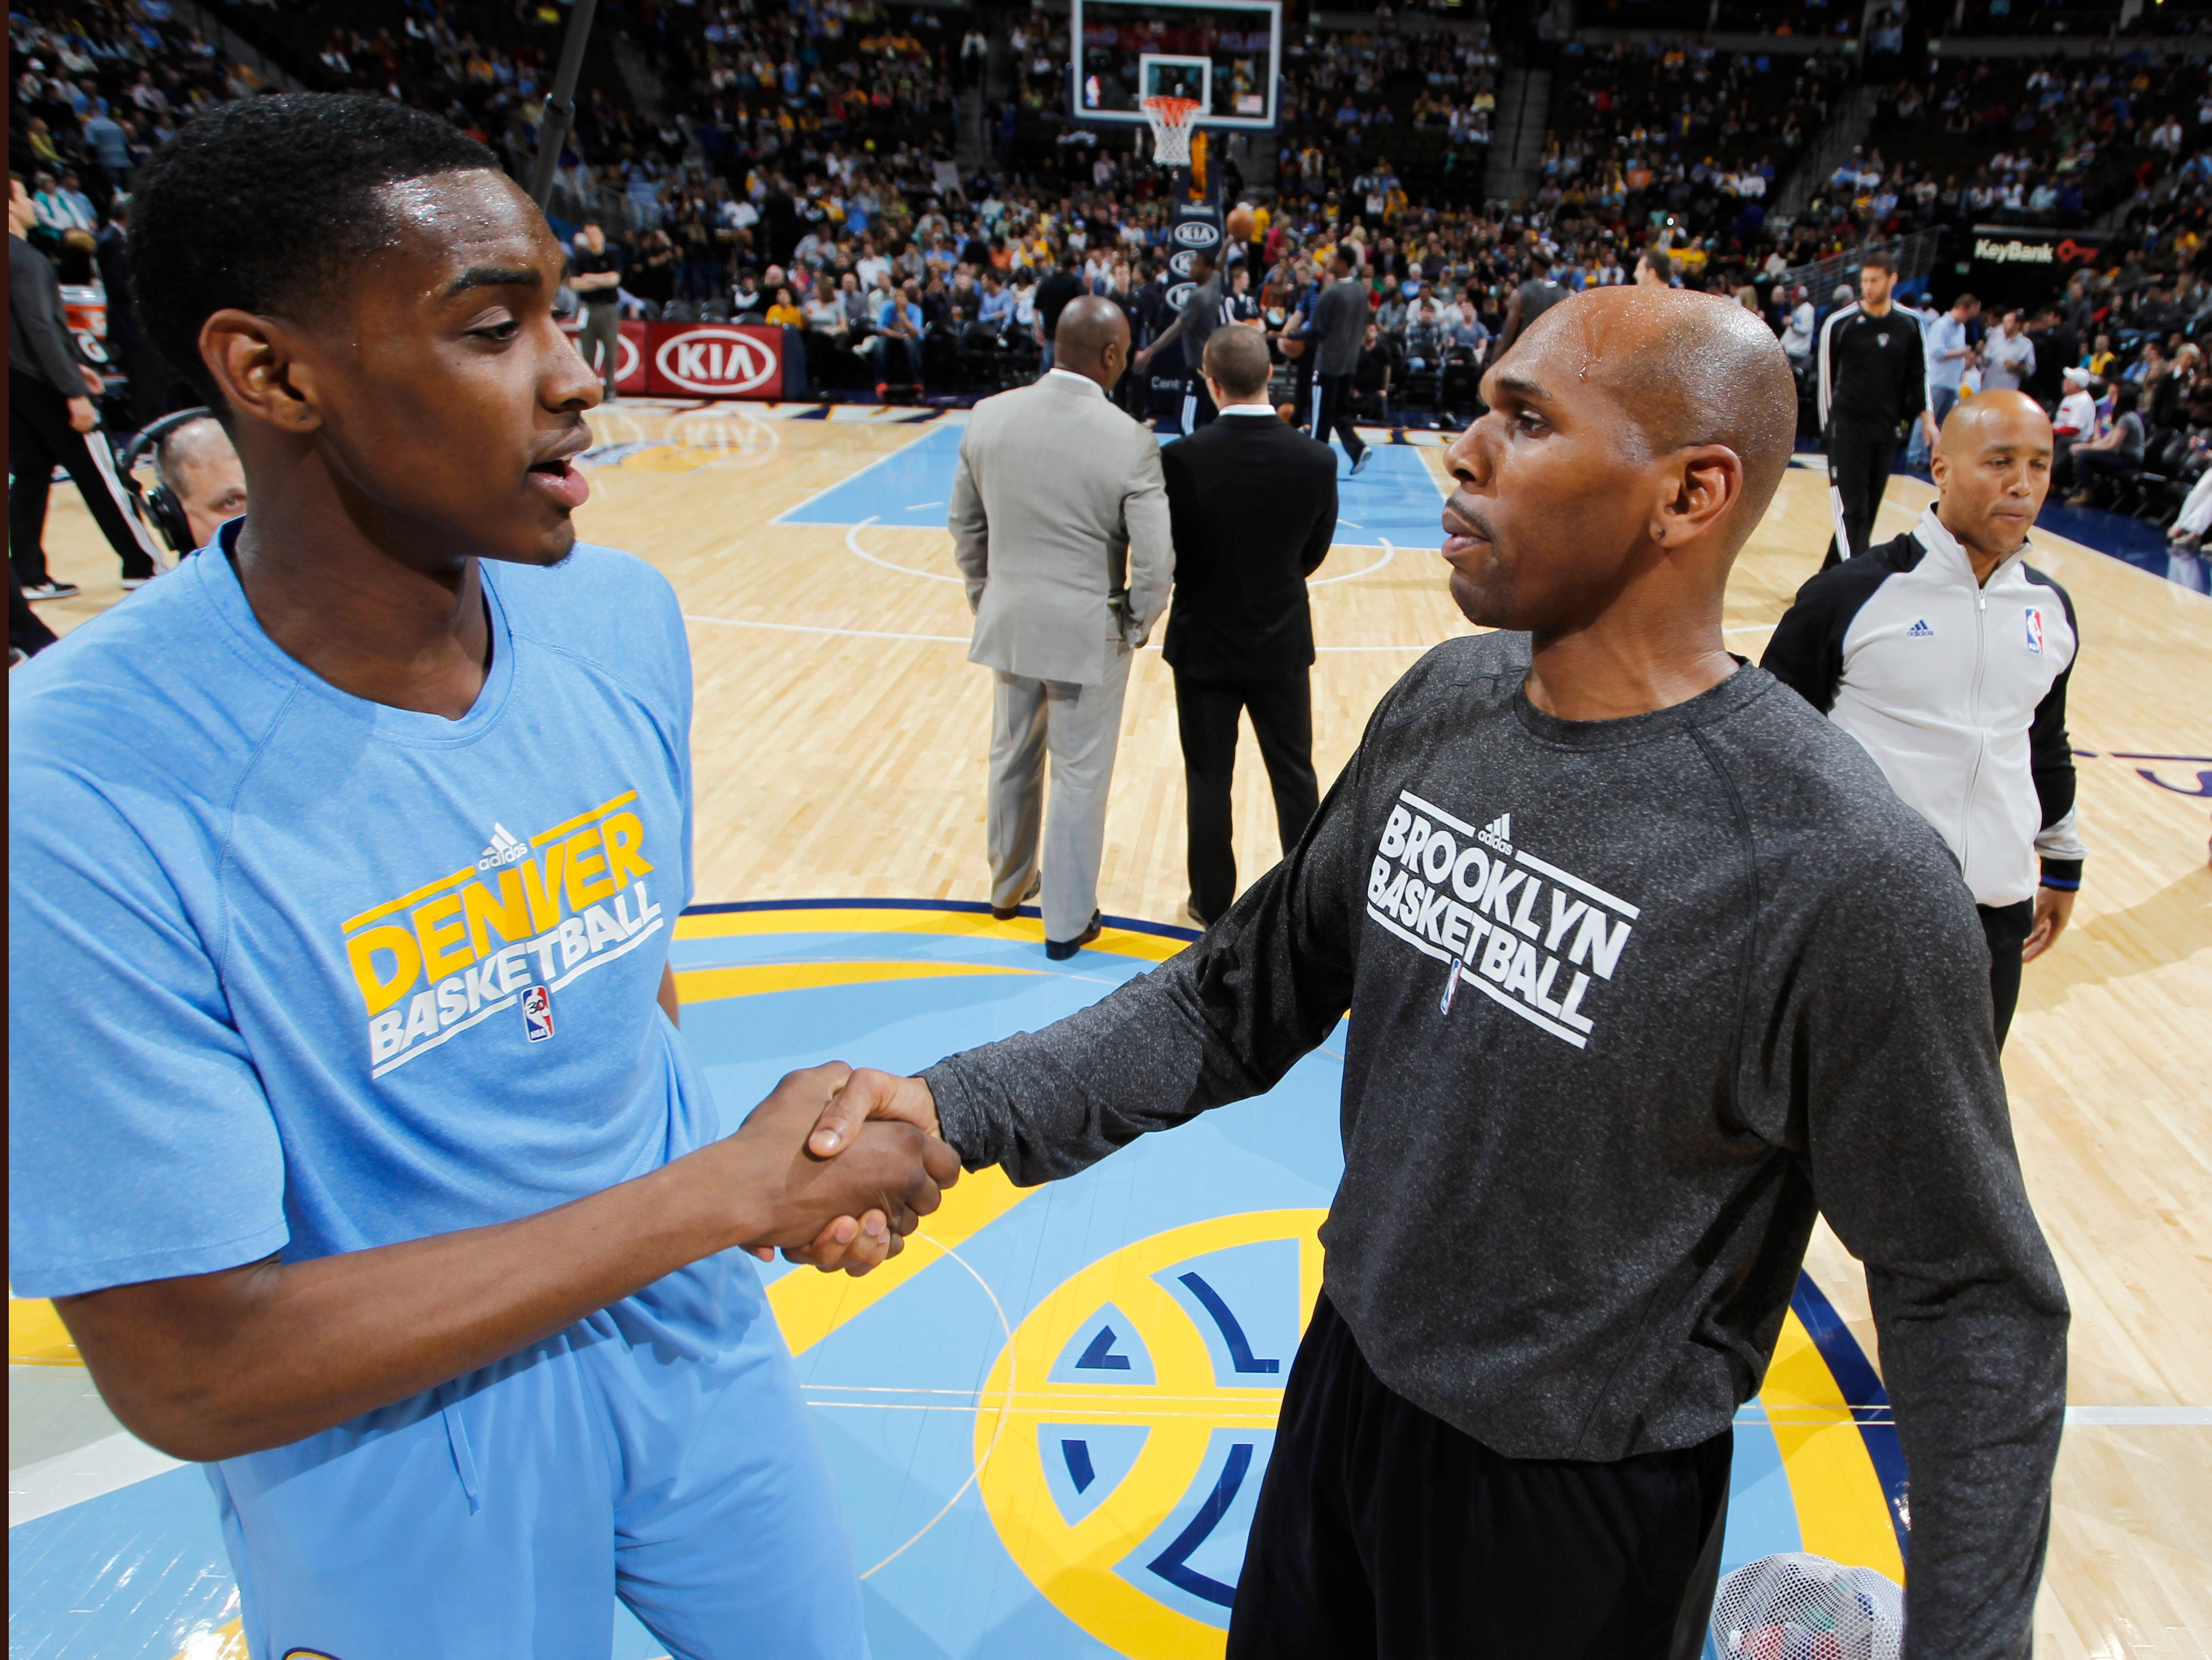 Brooklyn Nets forward Jerry Stackhouse, right, greets Denver Nuggets rookie forward Quincy Miller before the first quarter of an NBA basketball game in Denver, Friday, March 29, 2013.